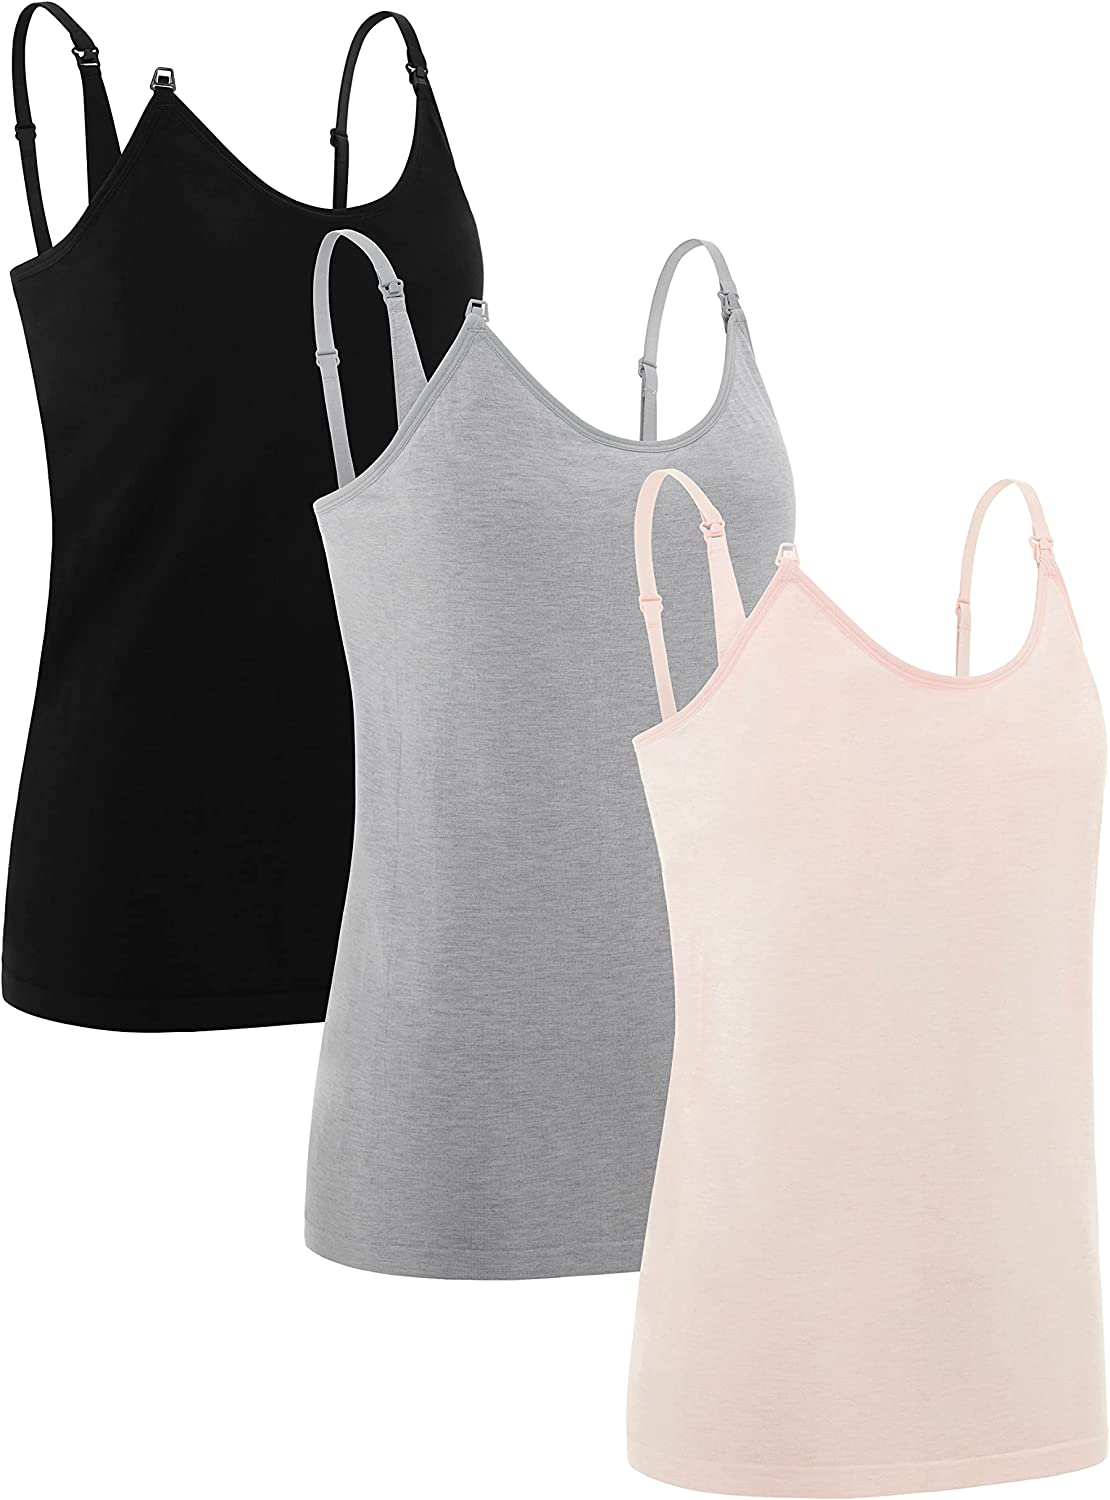 Under Control Women's Maternity Nursing Tops & Tees Tank Top Camisole (3 Pack) at  Women's Clothing store